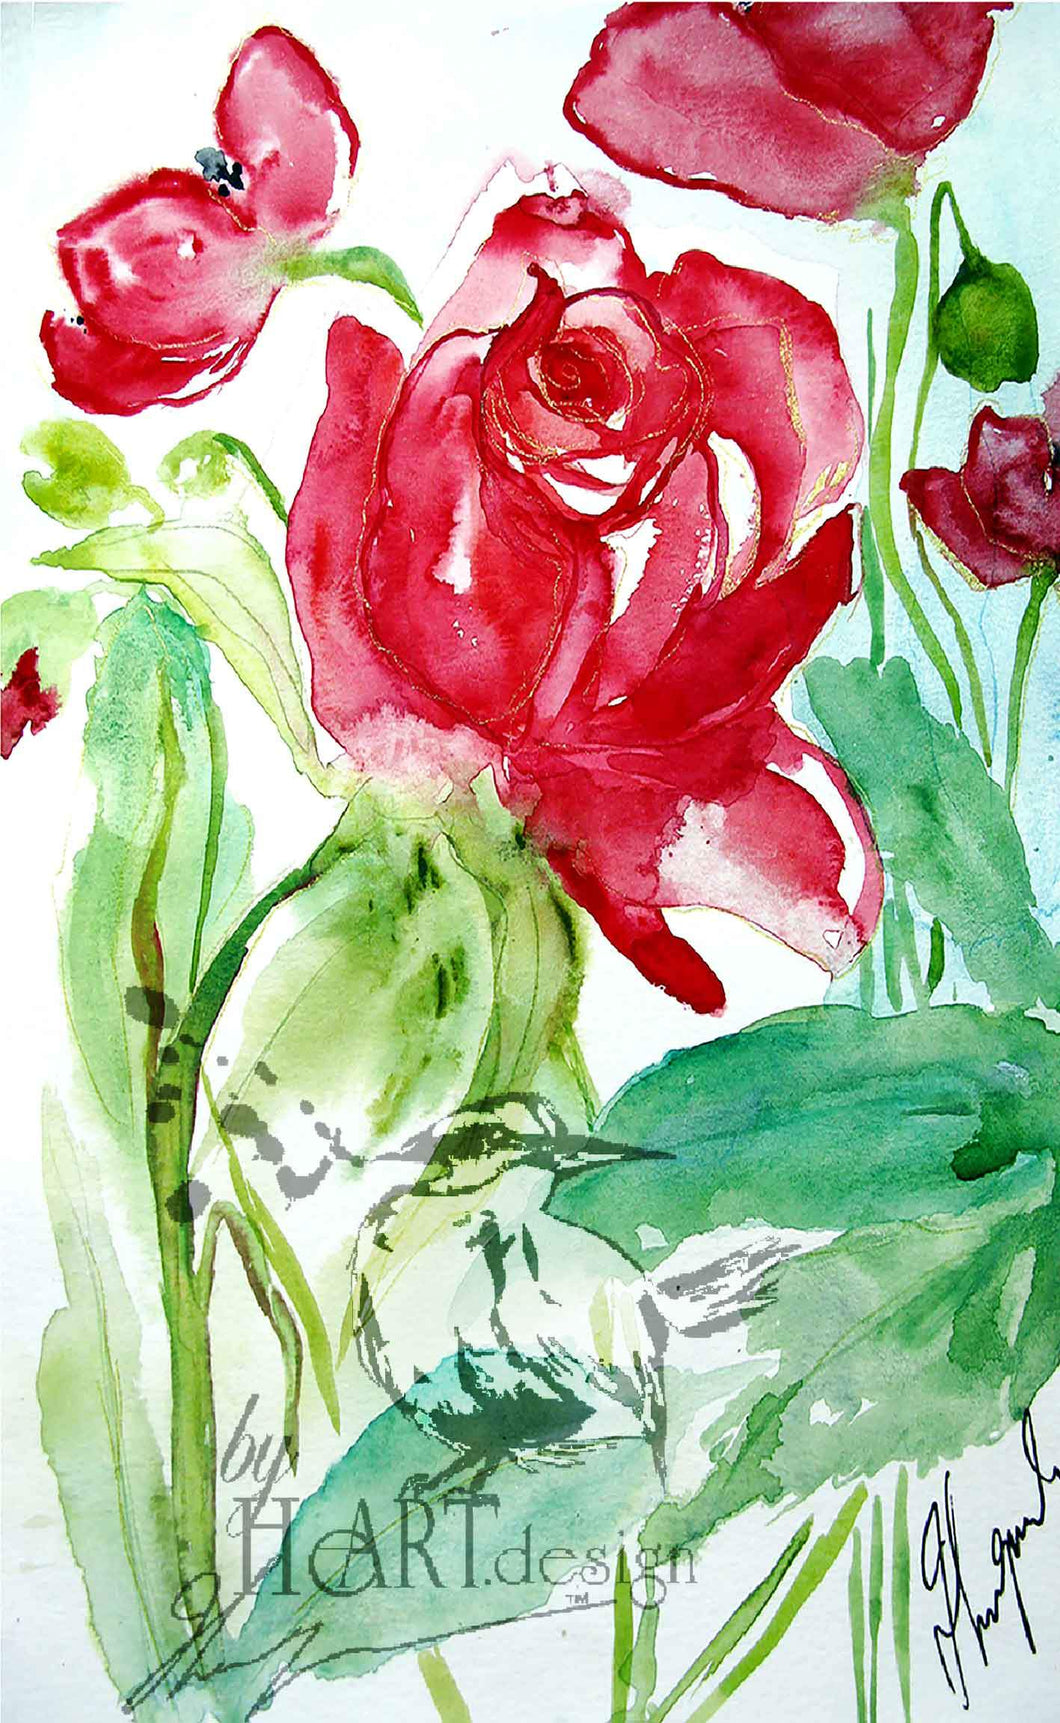 FLORAL ART POWER OF A ROSE